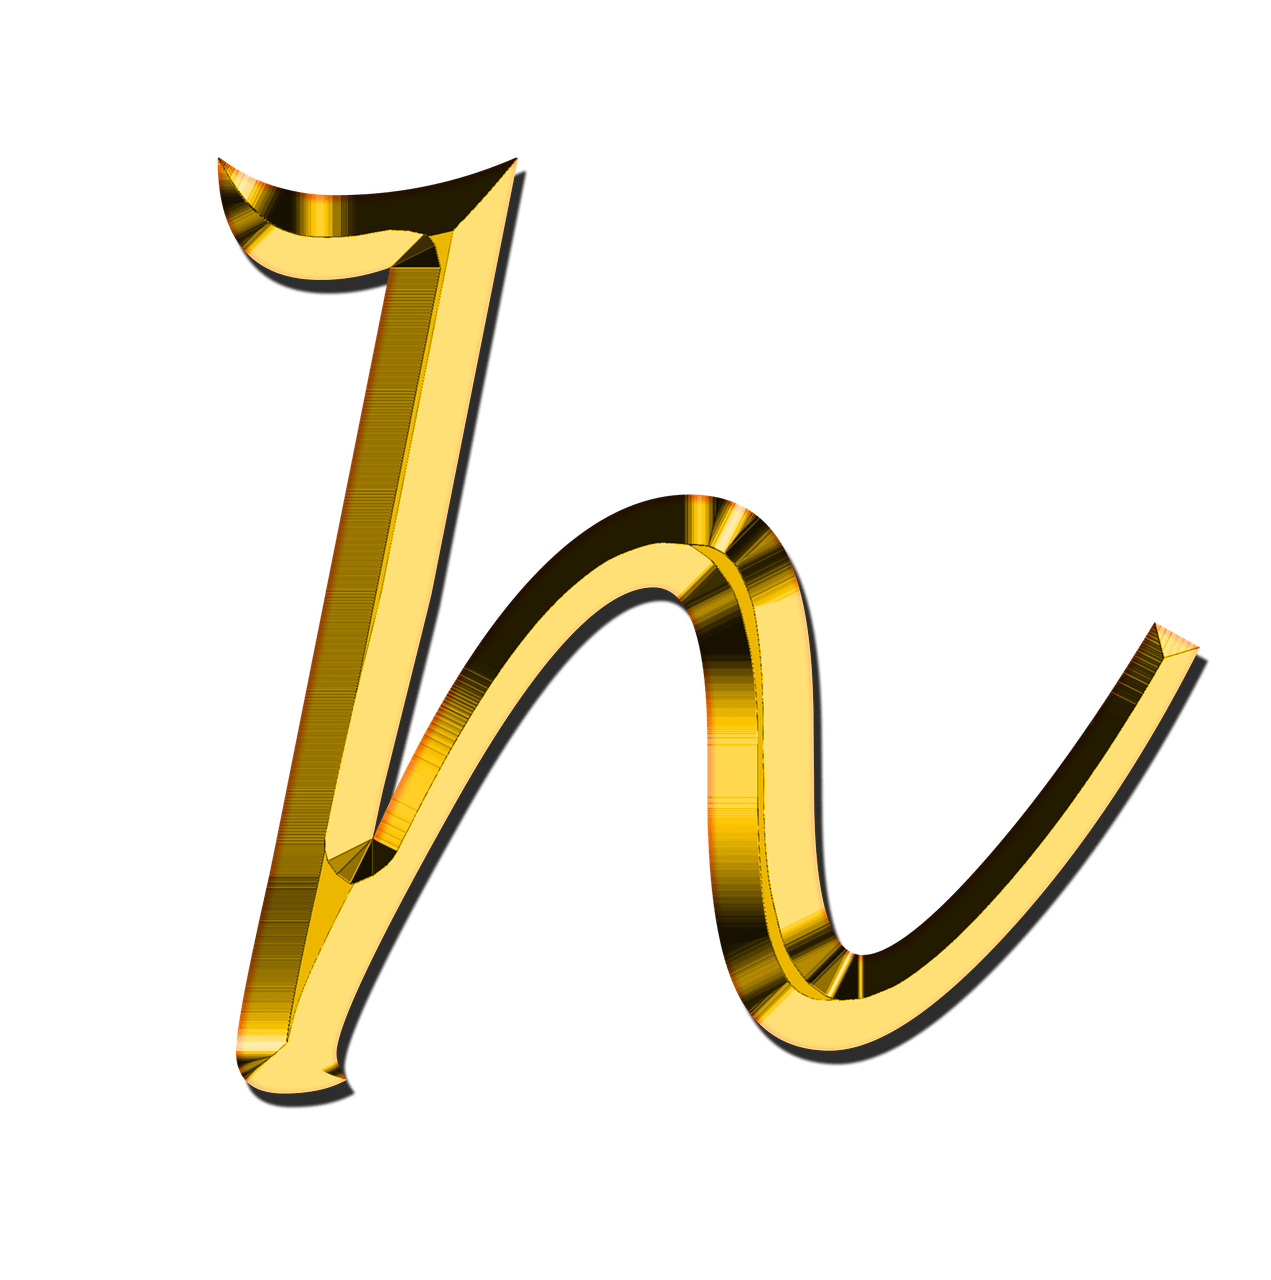 Small transparent png stickpng. E clipart yellow letter